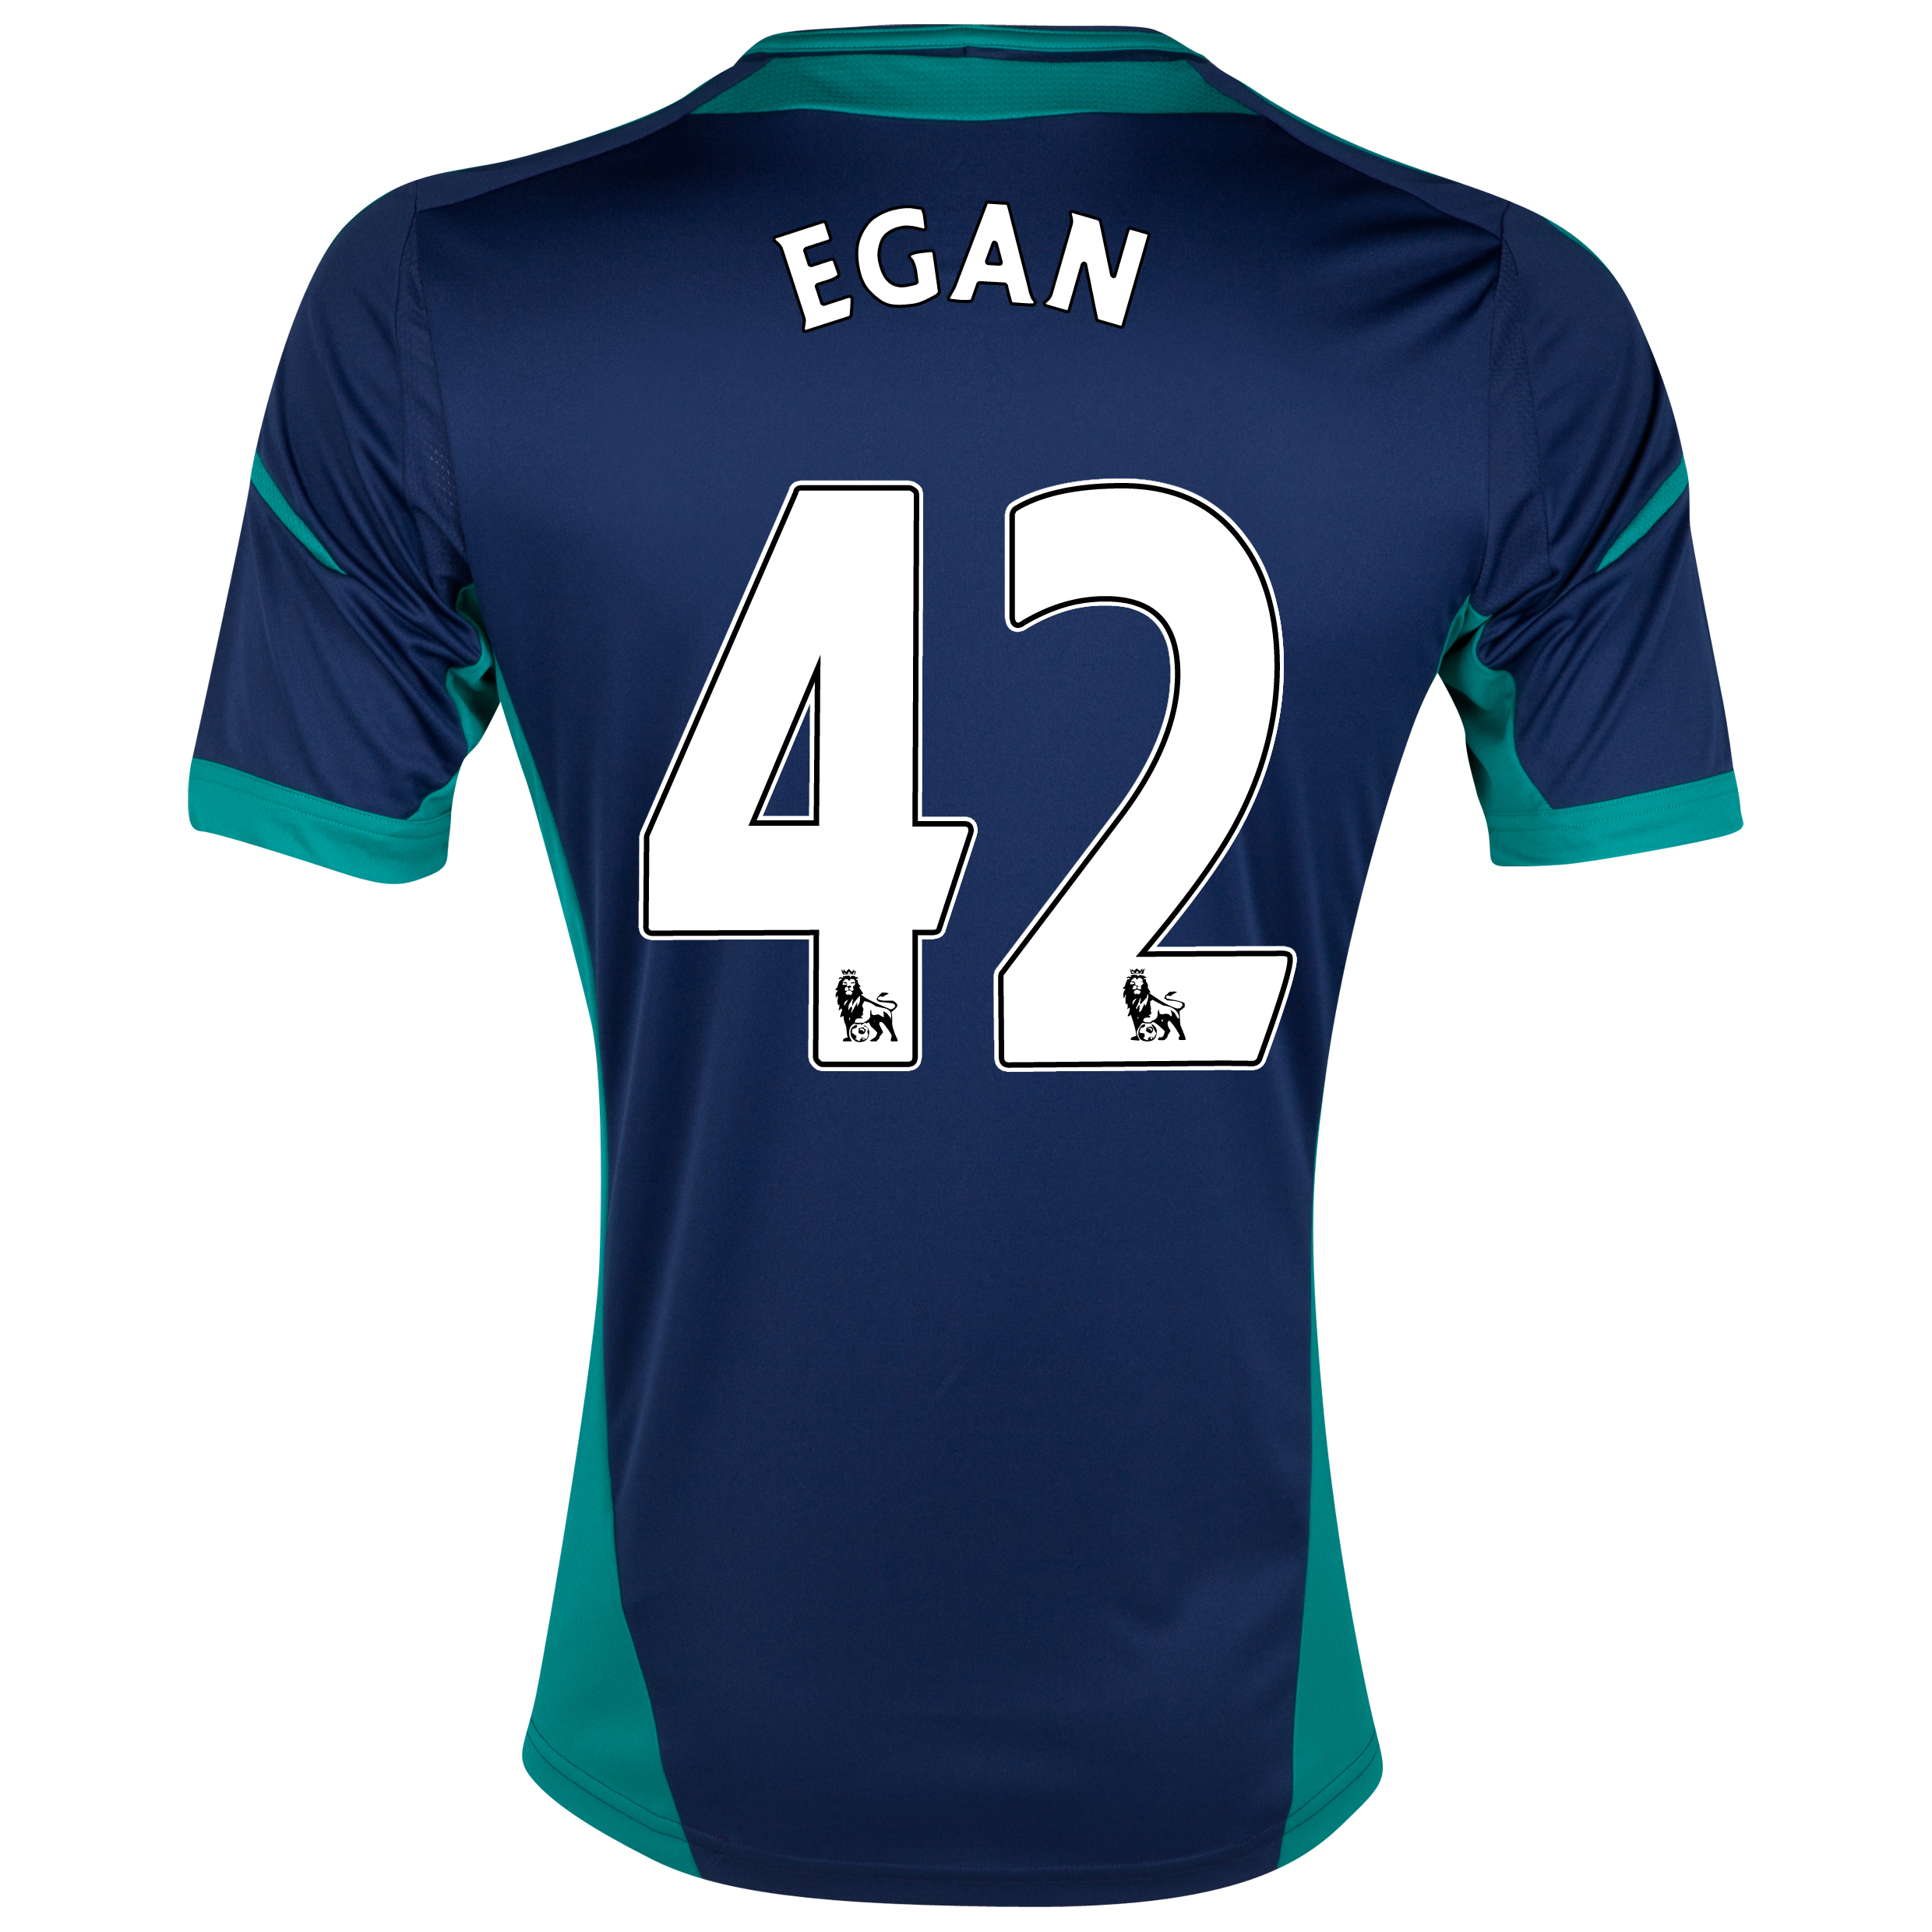 Sunderland Away Shirt 2012/13 - Junior with Egan 42 printing